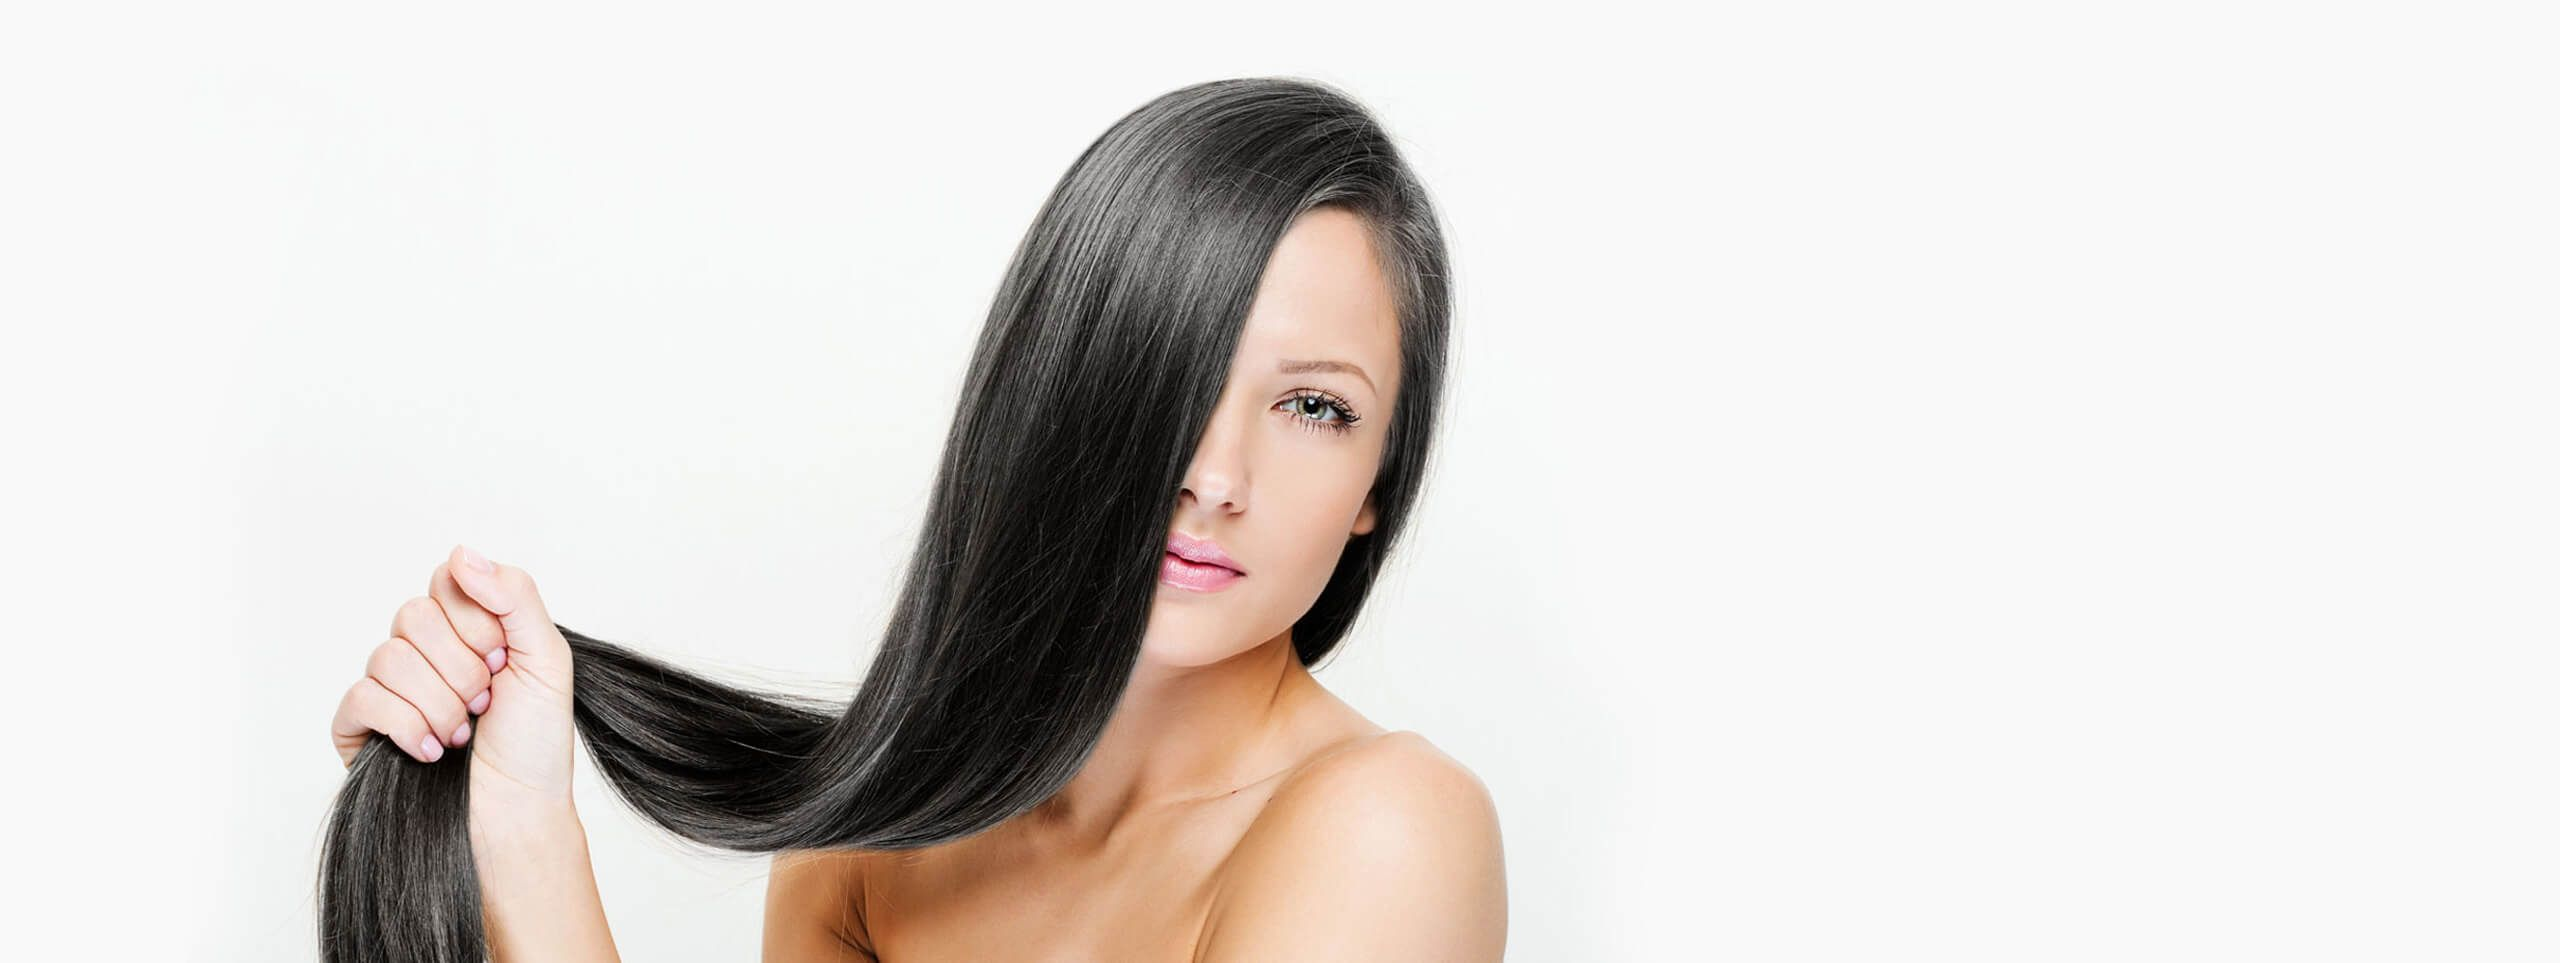 Model with very long, thin hairstyle